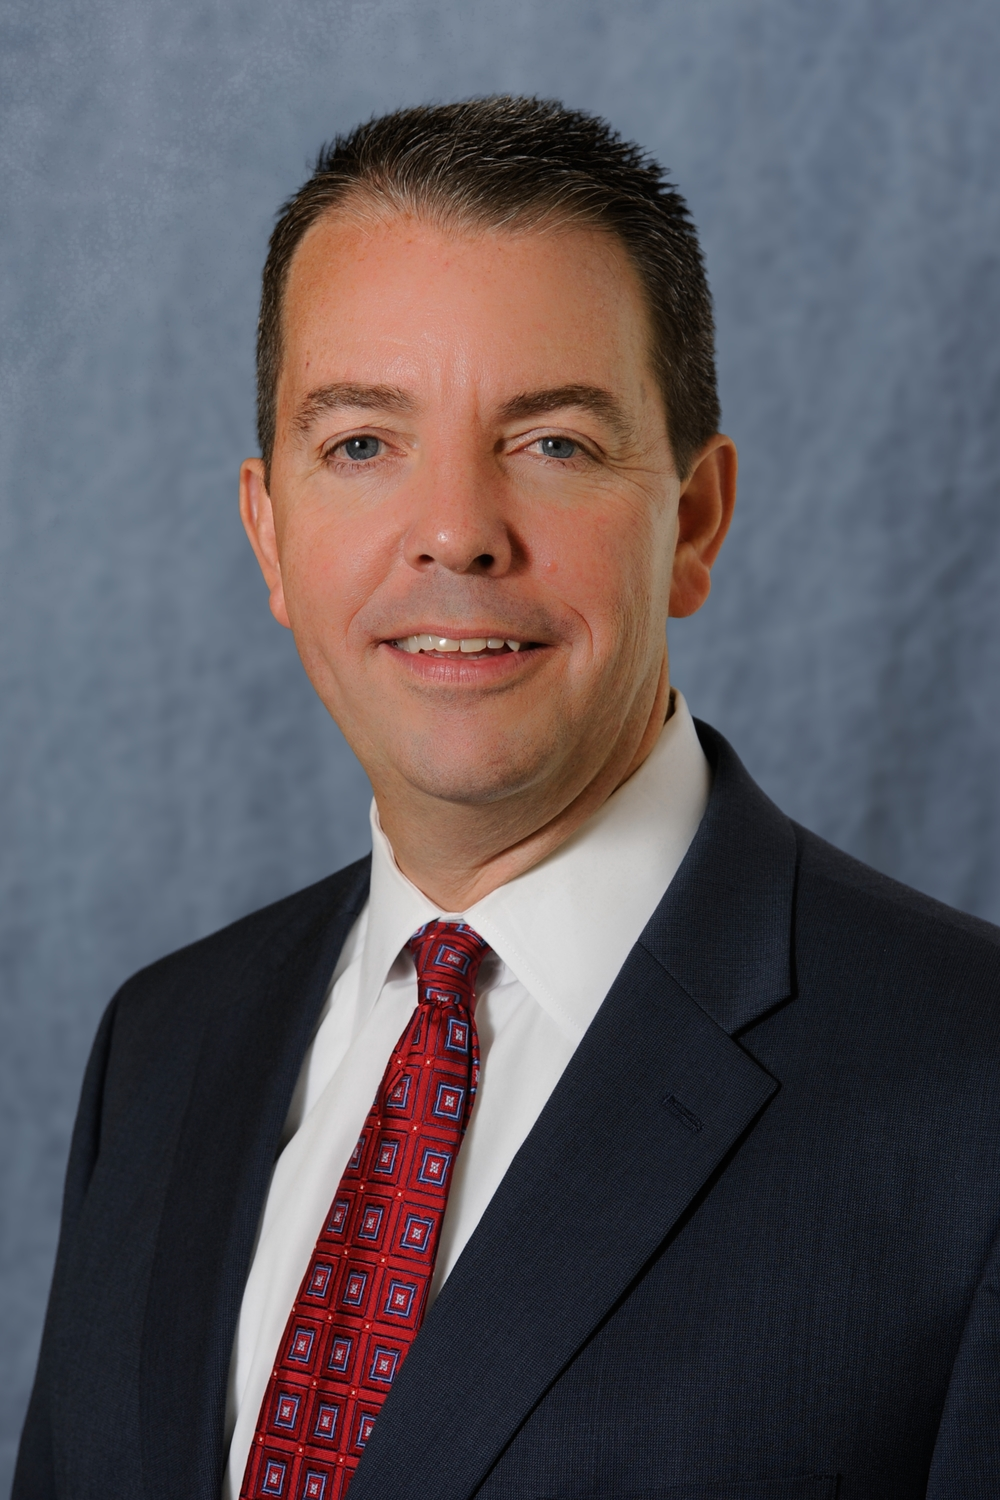 Marshall Stewart, Ed.D., as Special Assistant to the Dean and Director of College Leadership and Strategy in the College of Agriculture and Life Sciences at NC State University